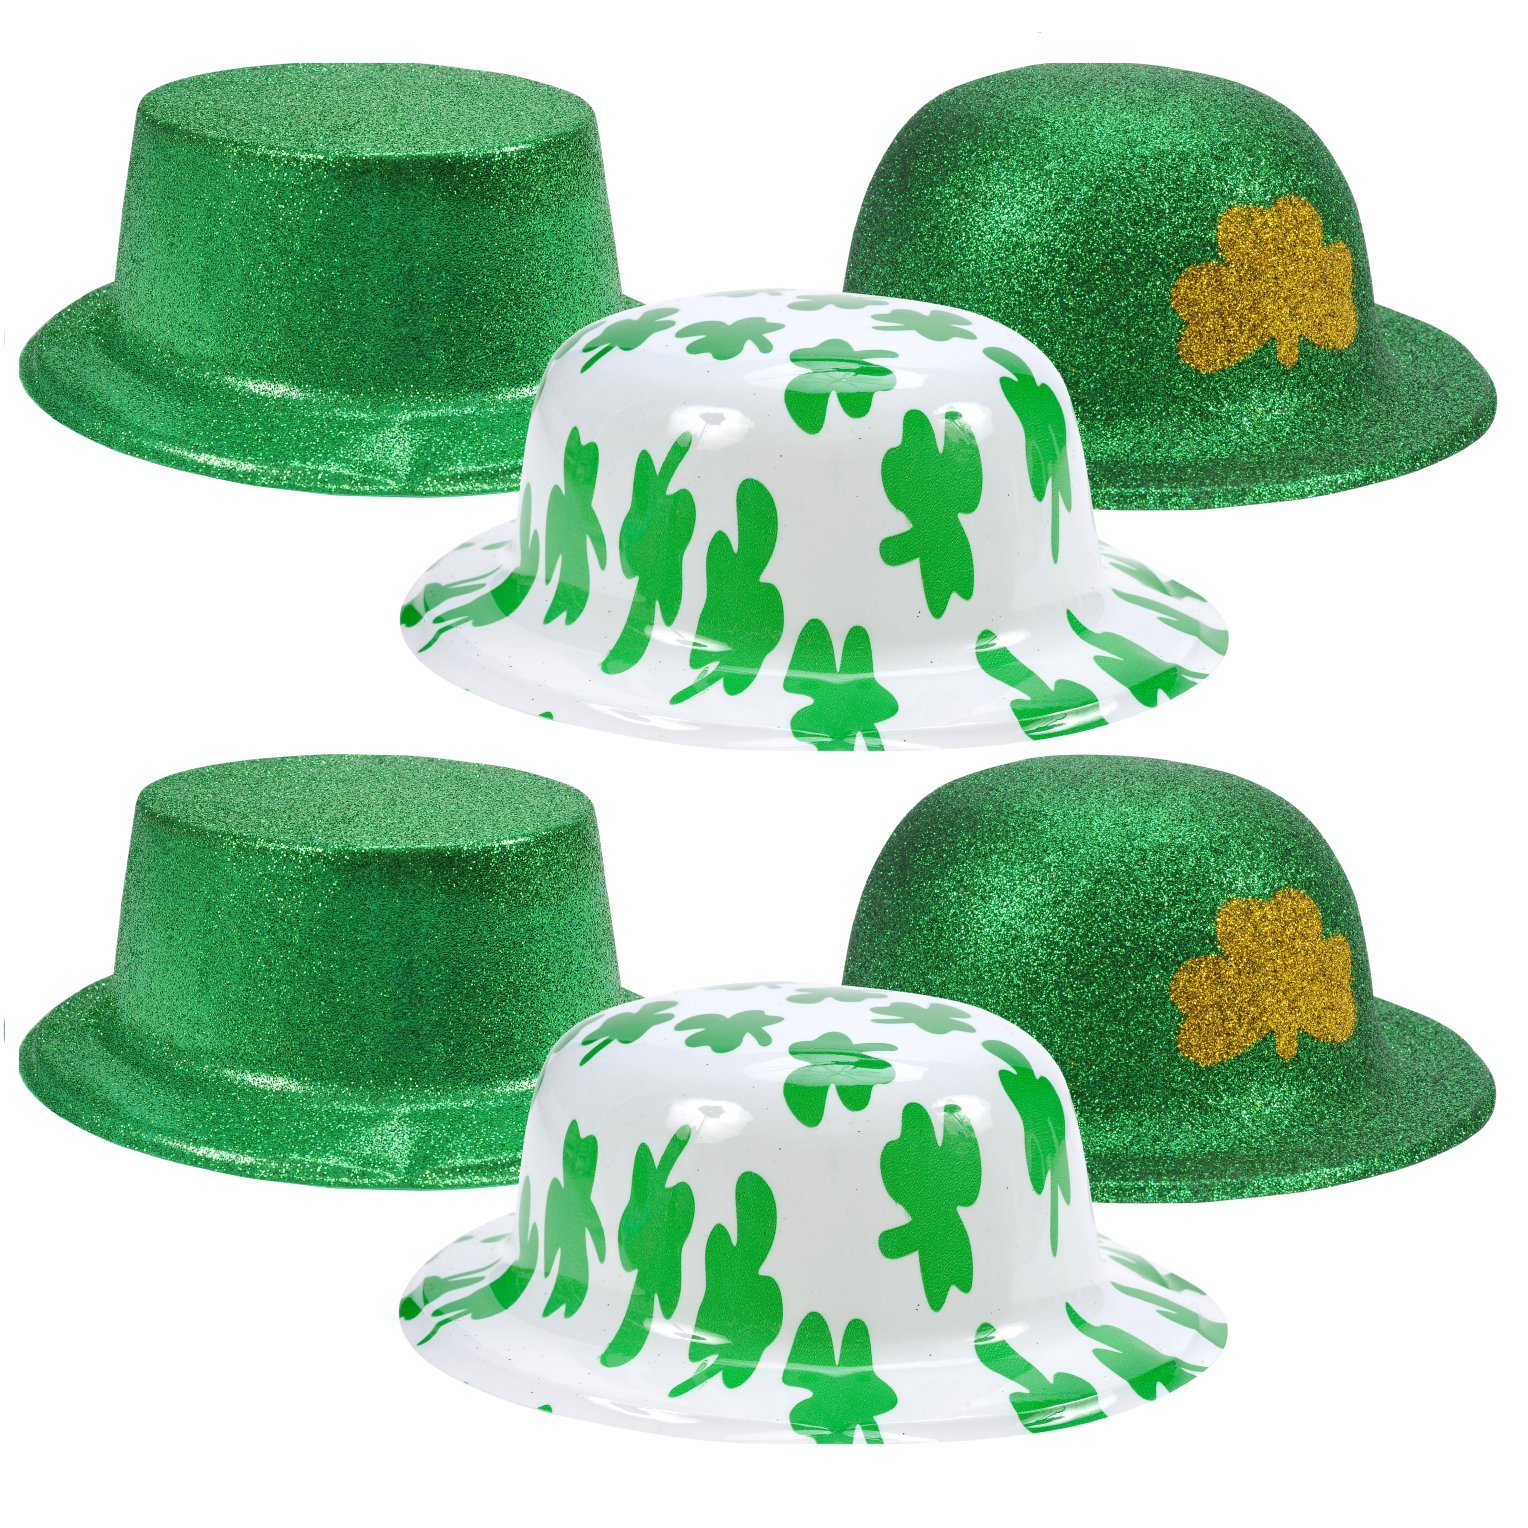 Gift Boutique 6 Pack St Patrick's Day Green Irish Shamrock Hats Costume Party Supplies Decoration Accessories